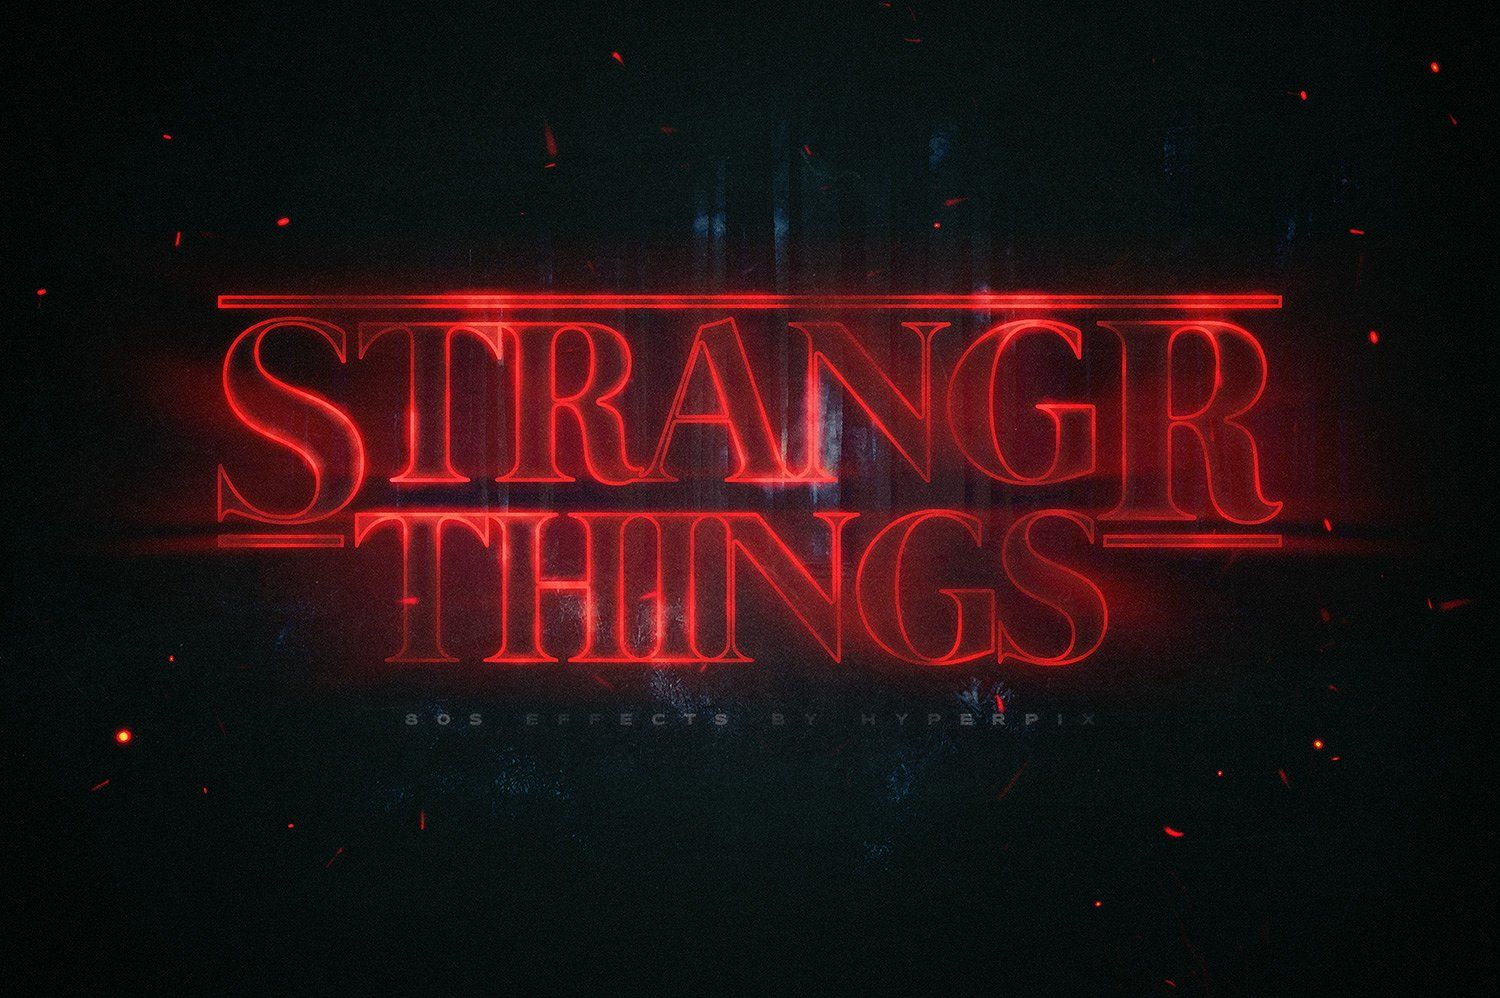 80s text and logo effects vol3 text effects stranger